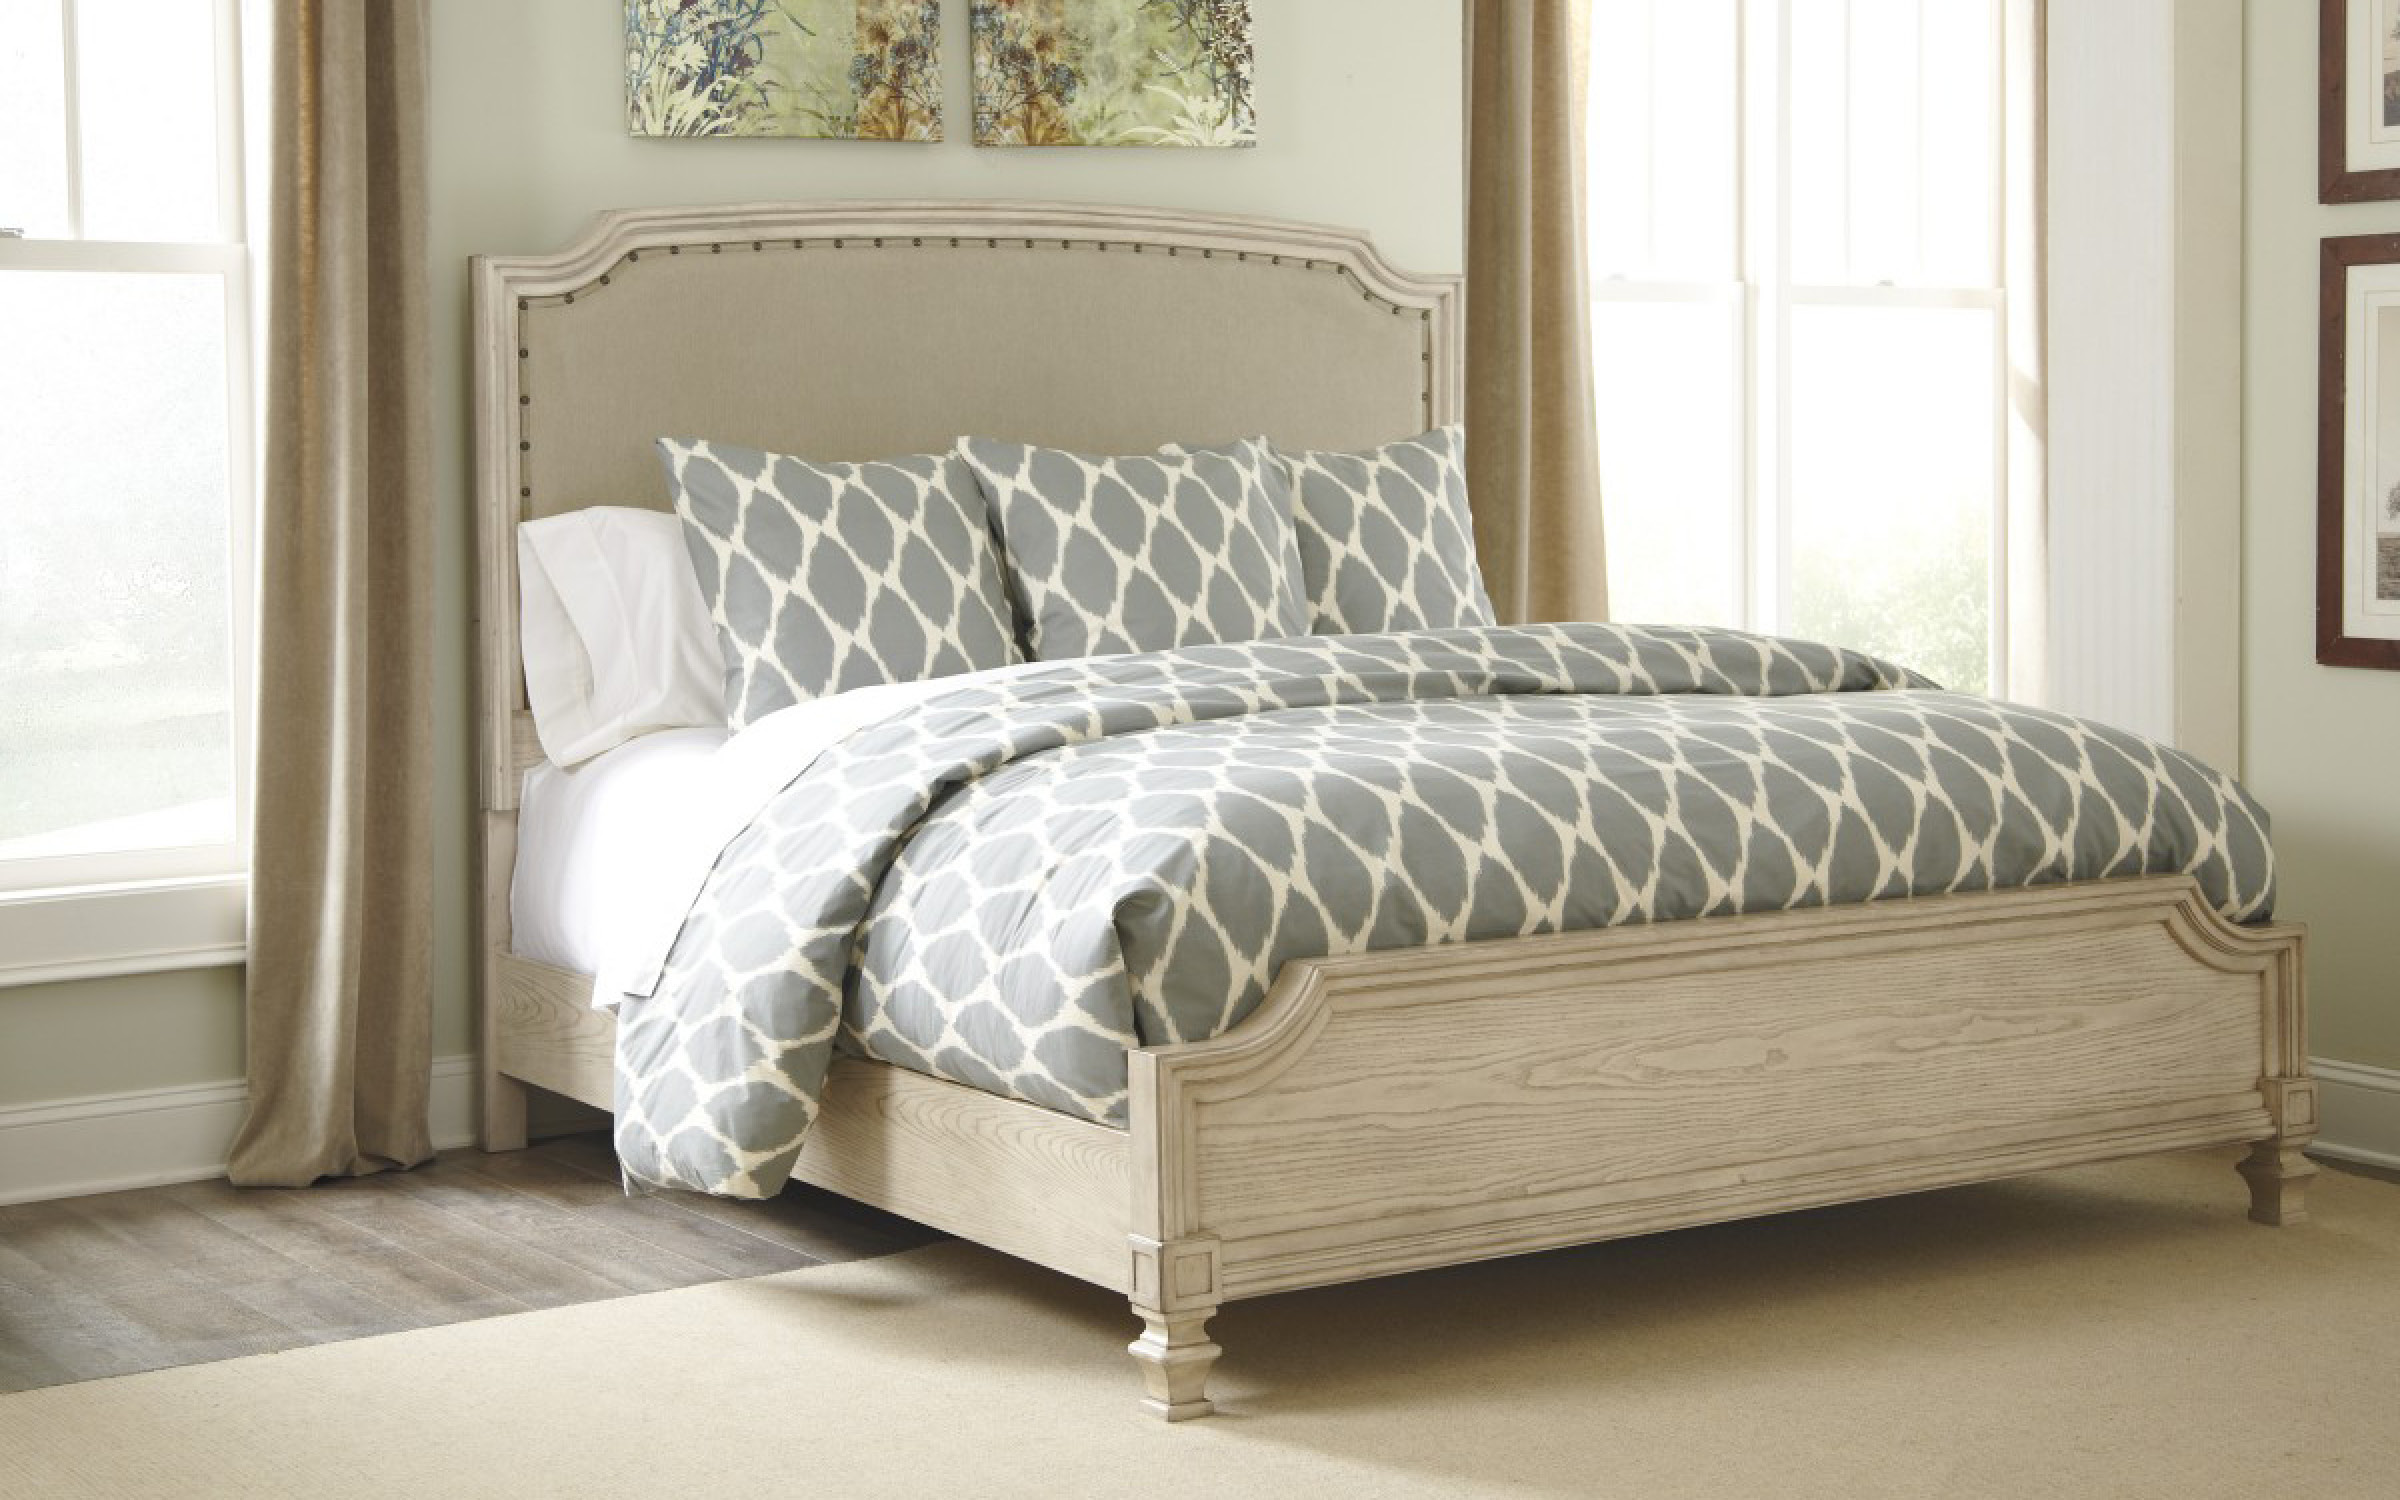 Upholstered Headboard | iFurnish, Frisco, CO